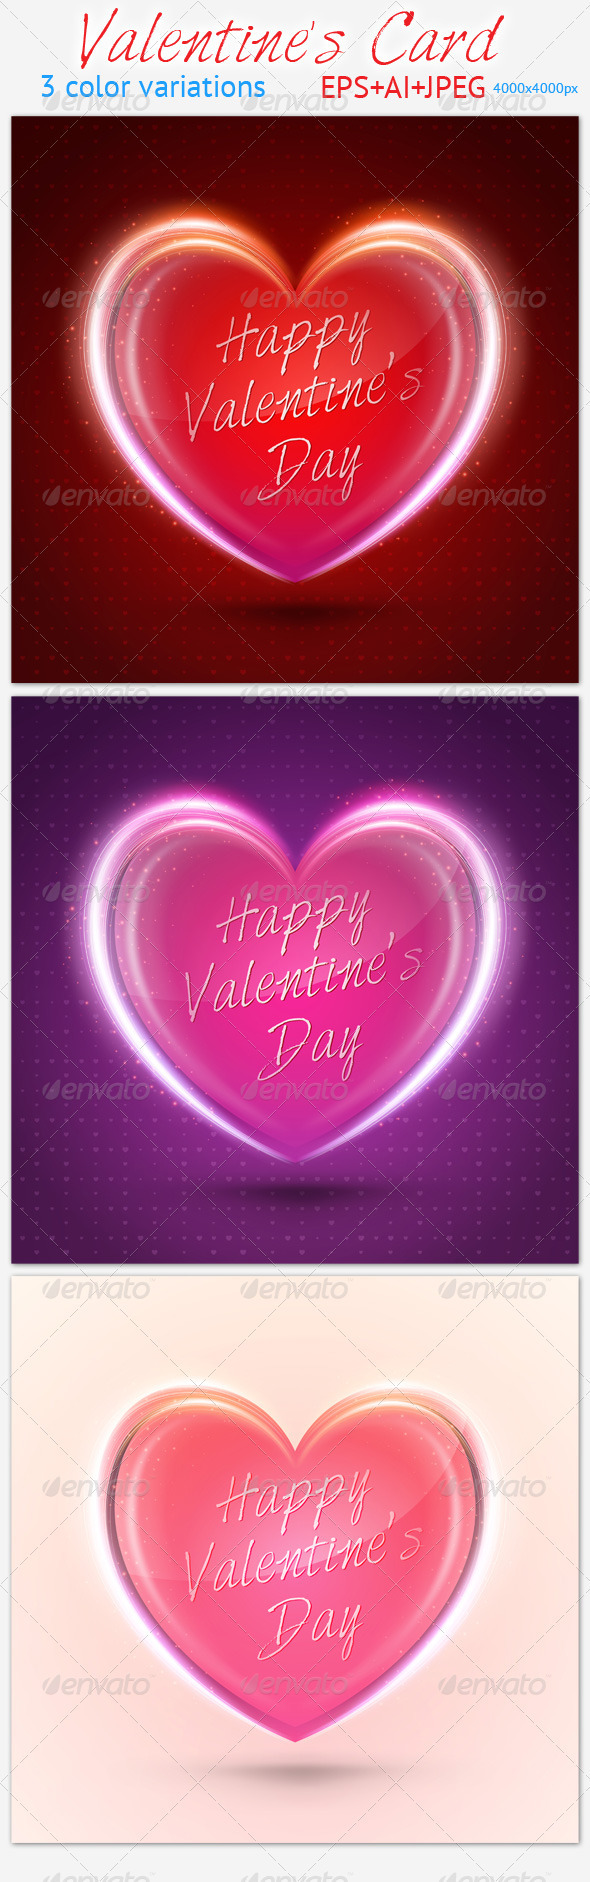 GraphicRiver Valentine s Card 3838076